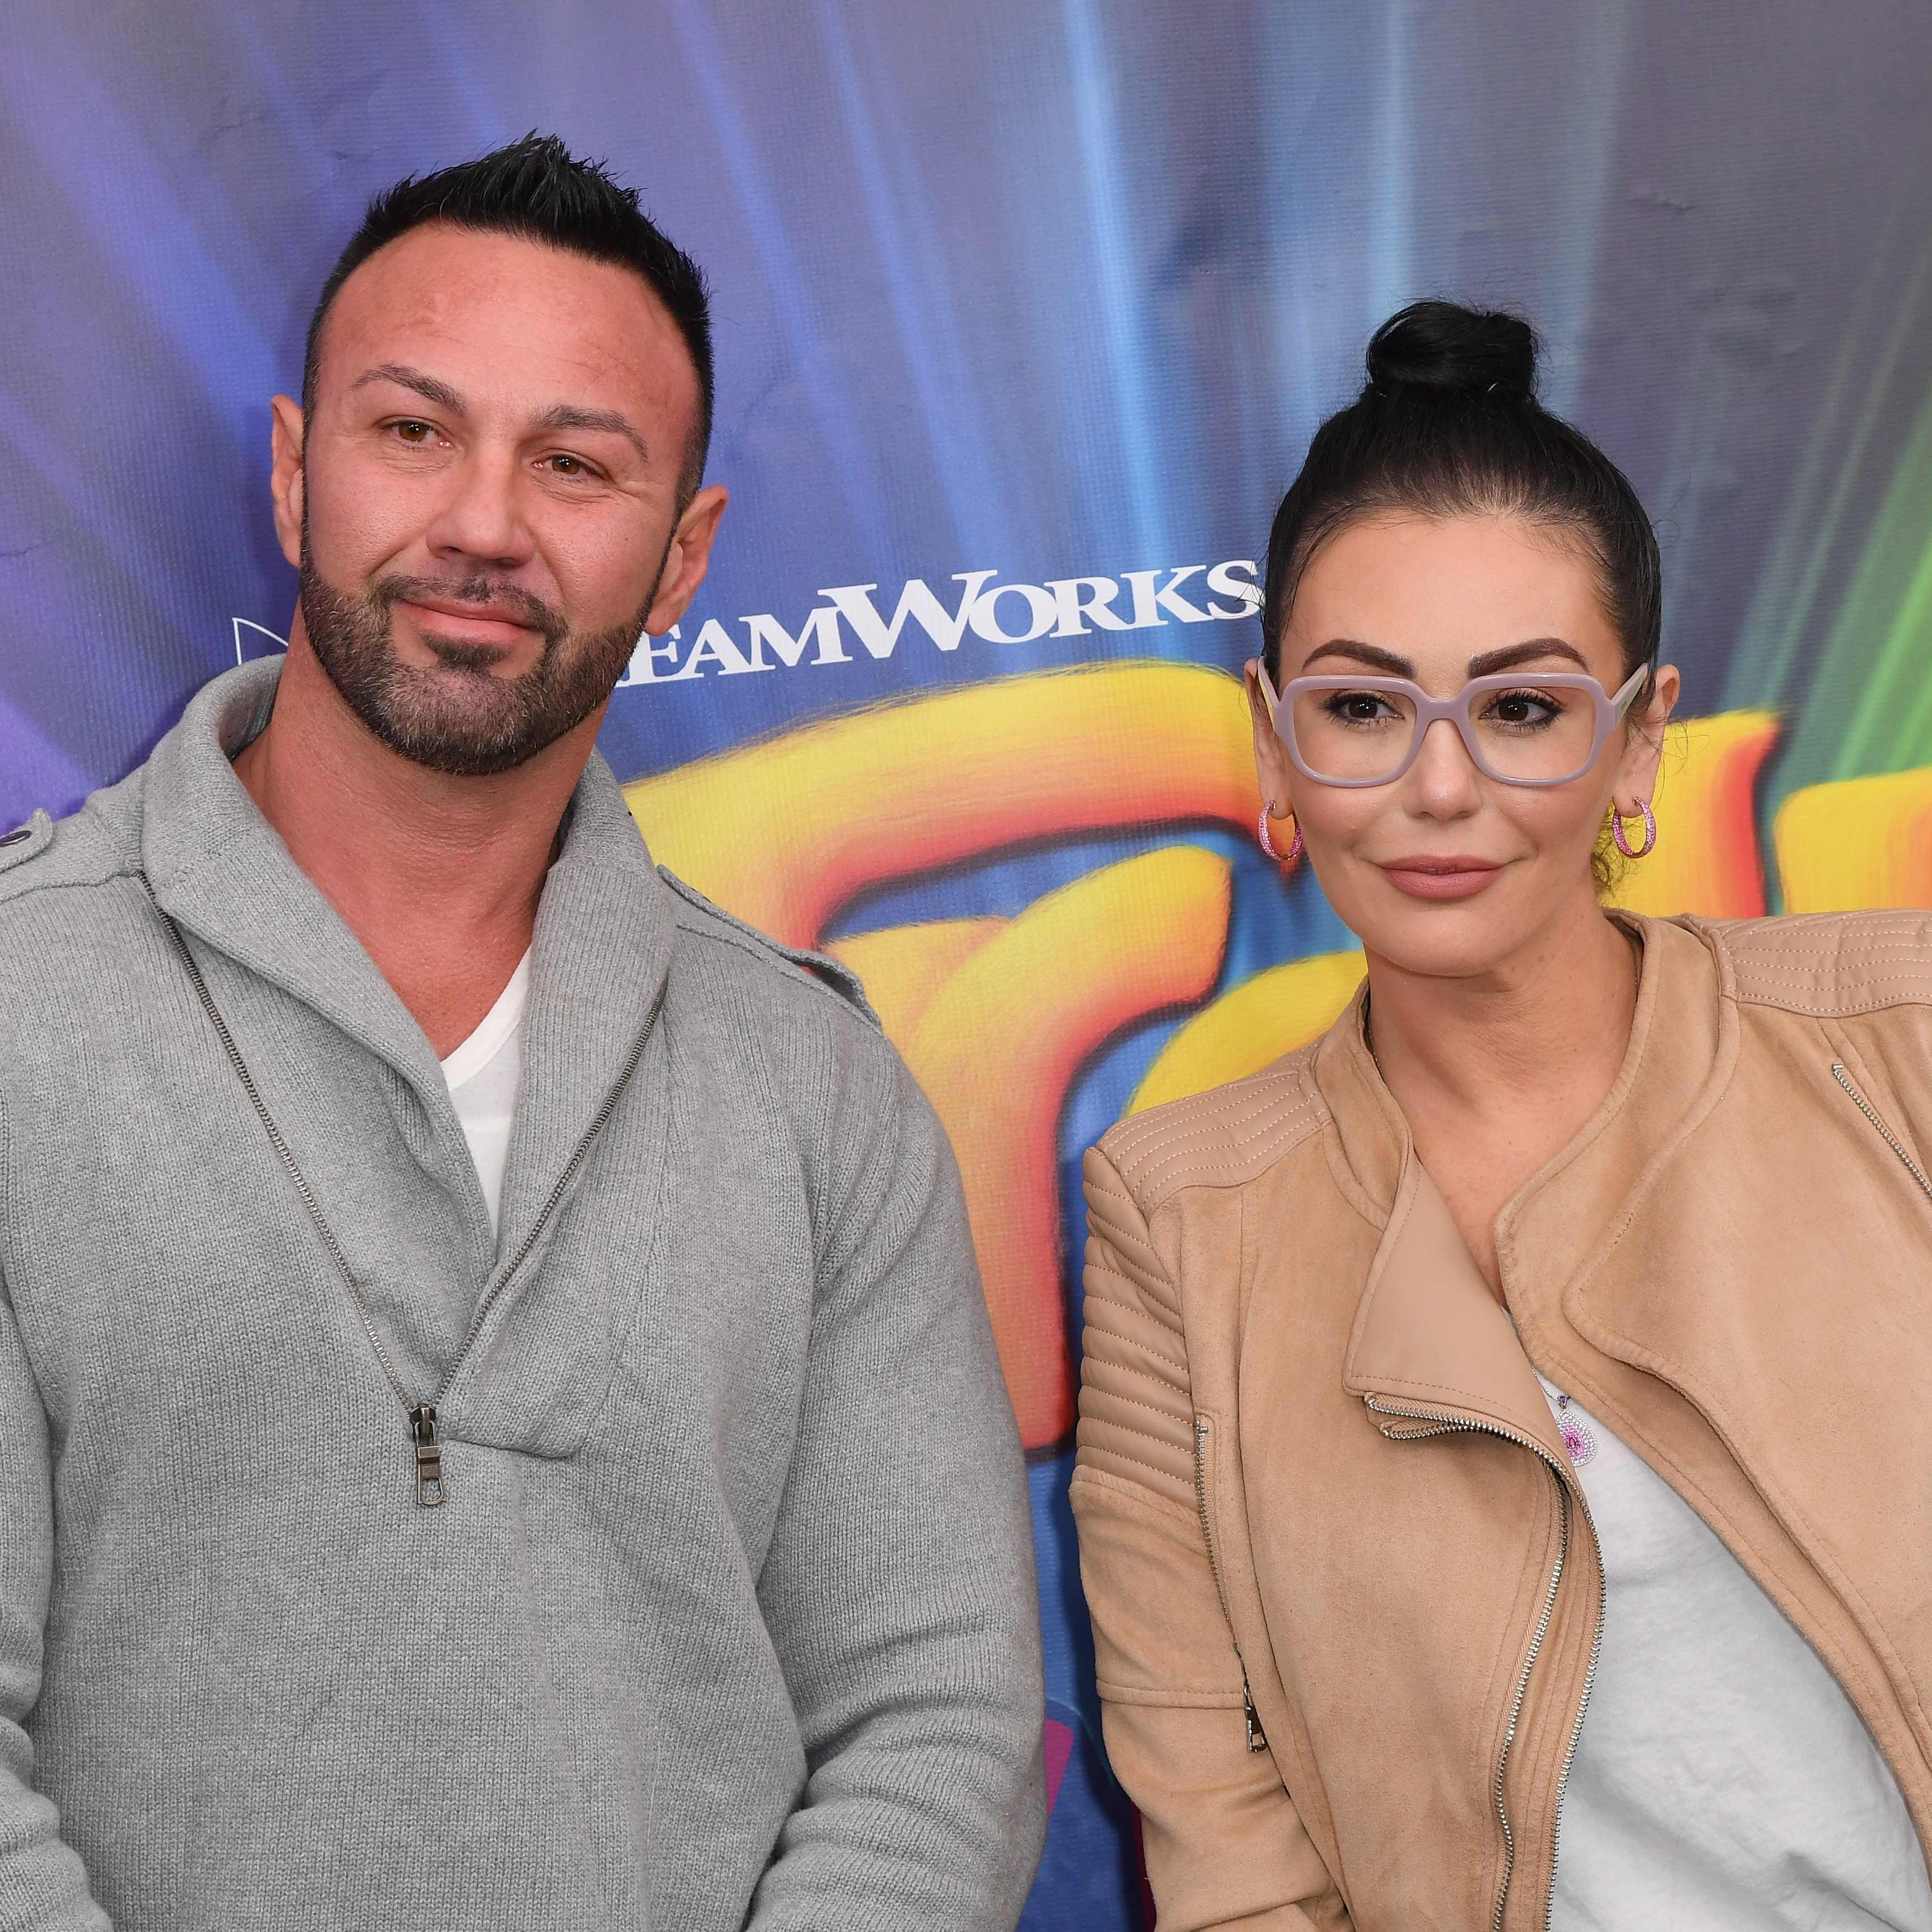 'Jersey Shore' star JWoww gets temporary restraining order against ex Roger Mathews